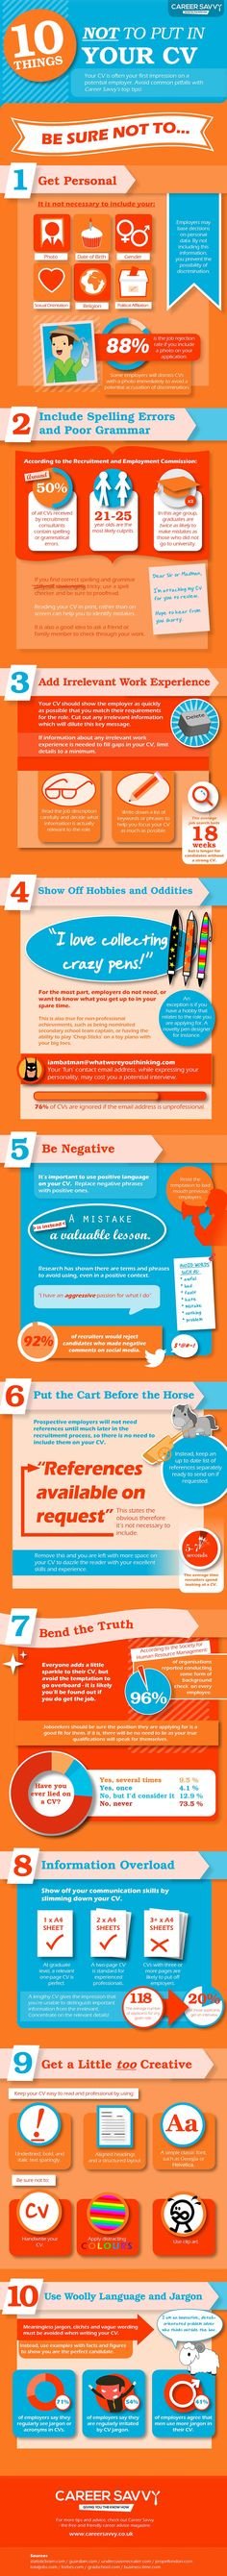 10 things NOT to put in your Resume #infographic